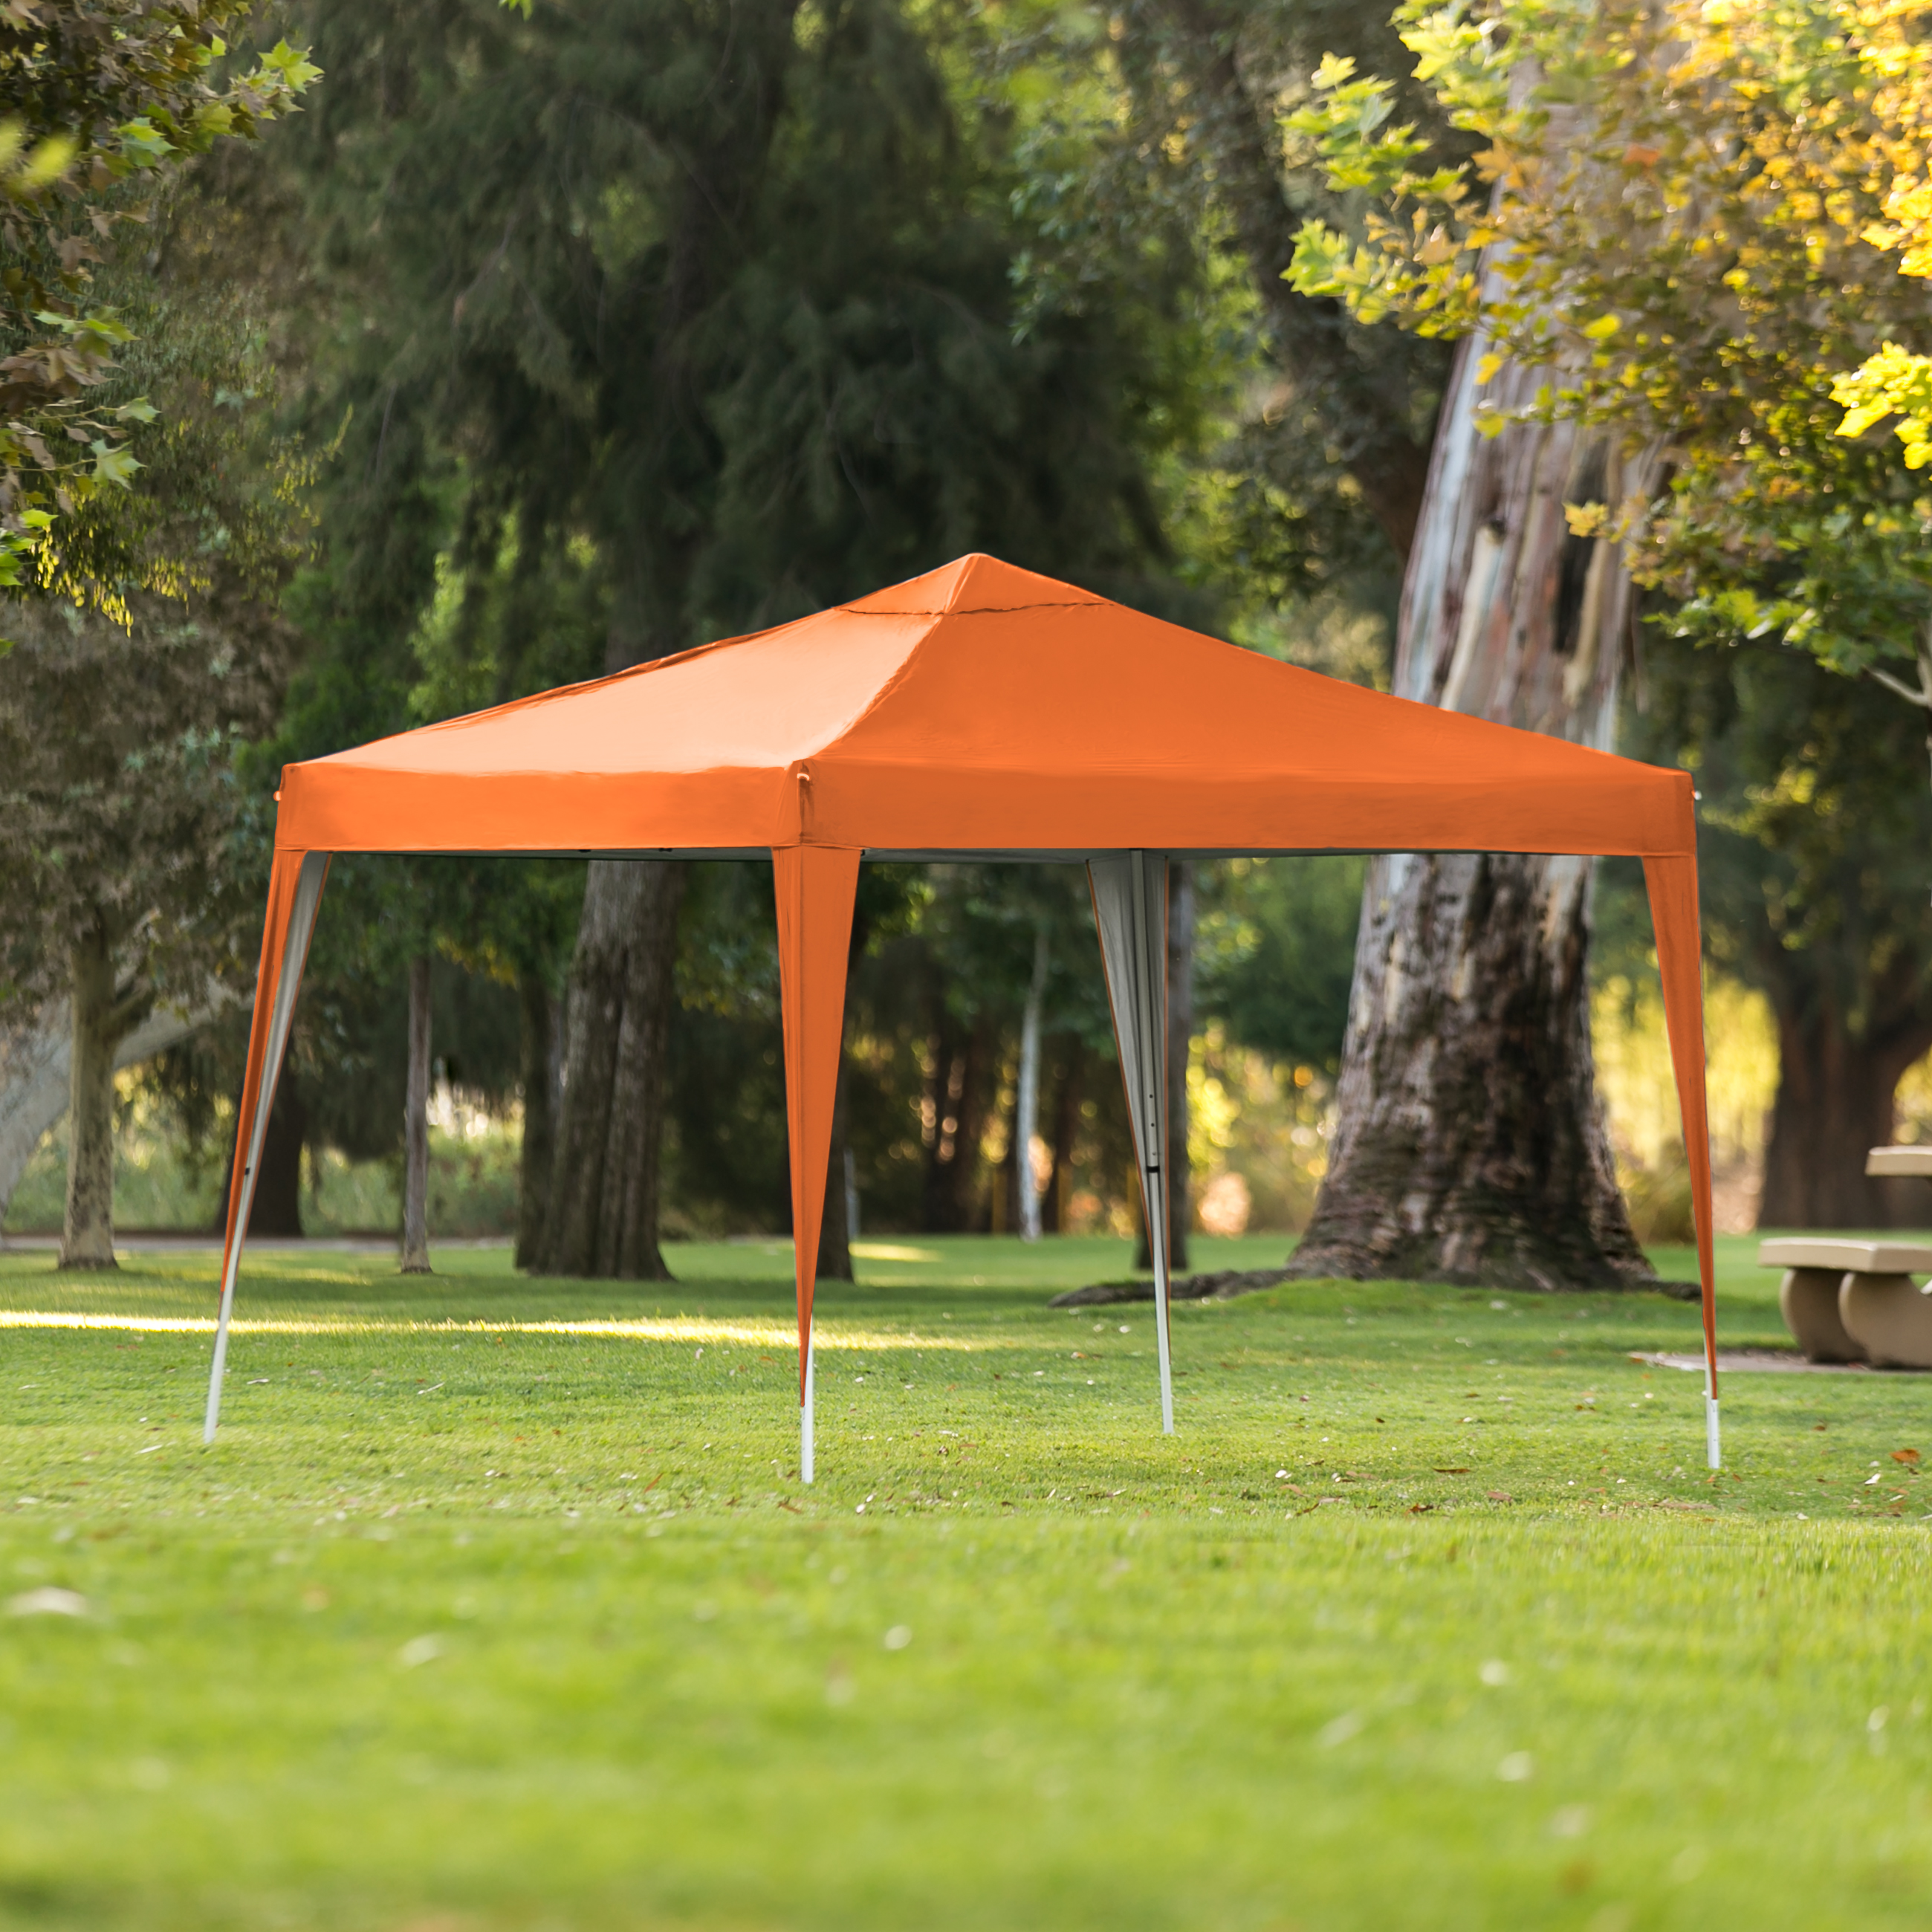 Best Choice Products 10x10ft Outdoor Portable Lightweight Instant Pop Up Gazebo Canopy Tent w/ Carrying Bag - Orange